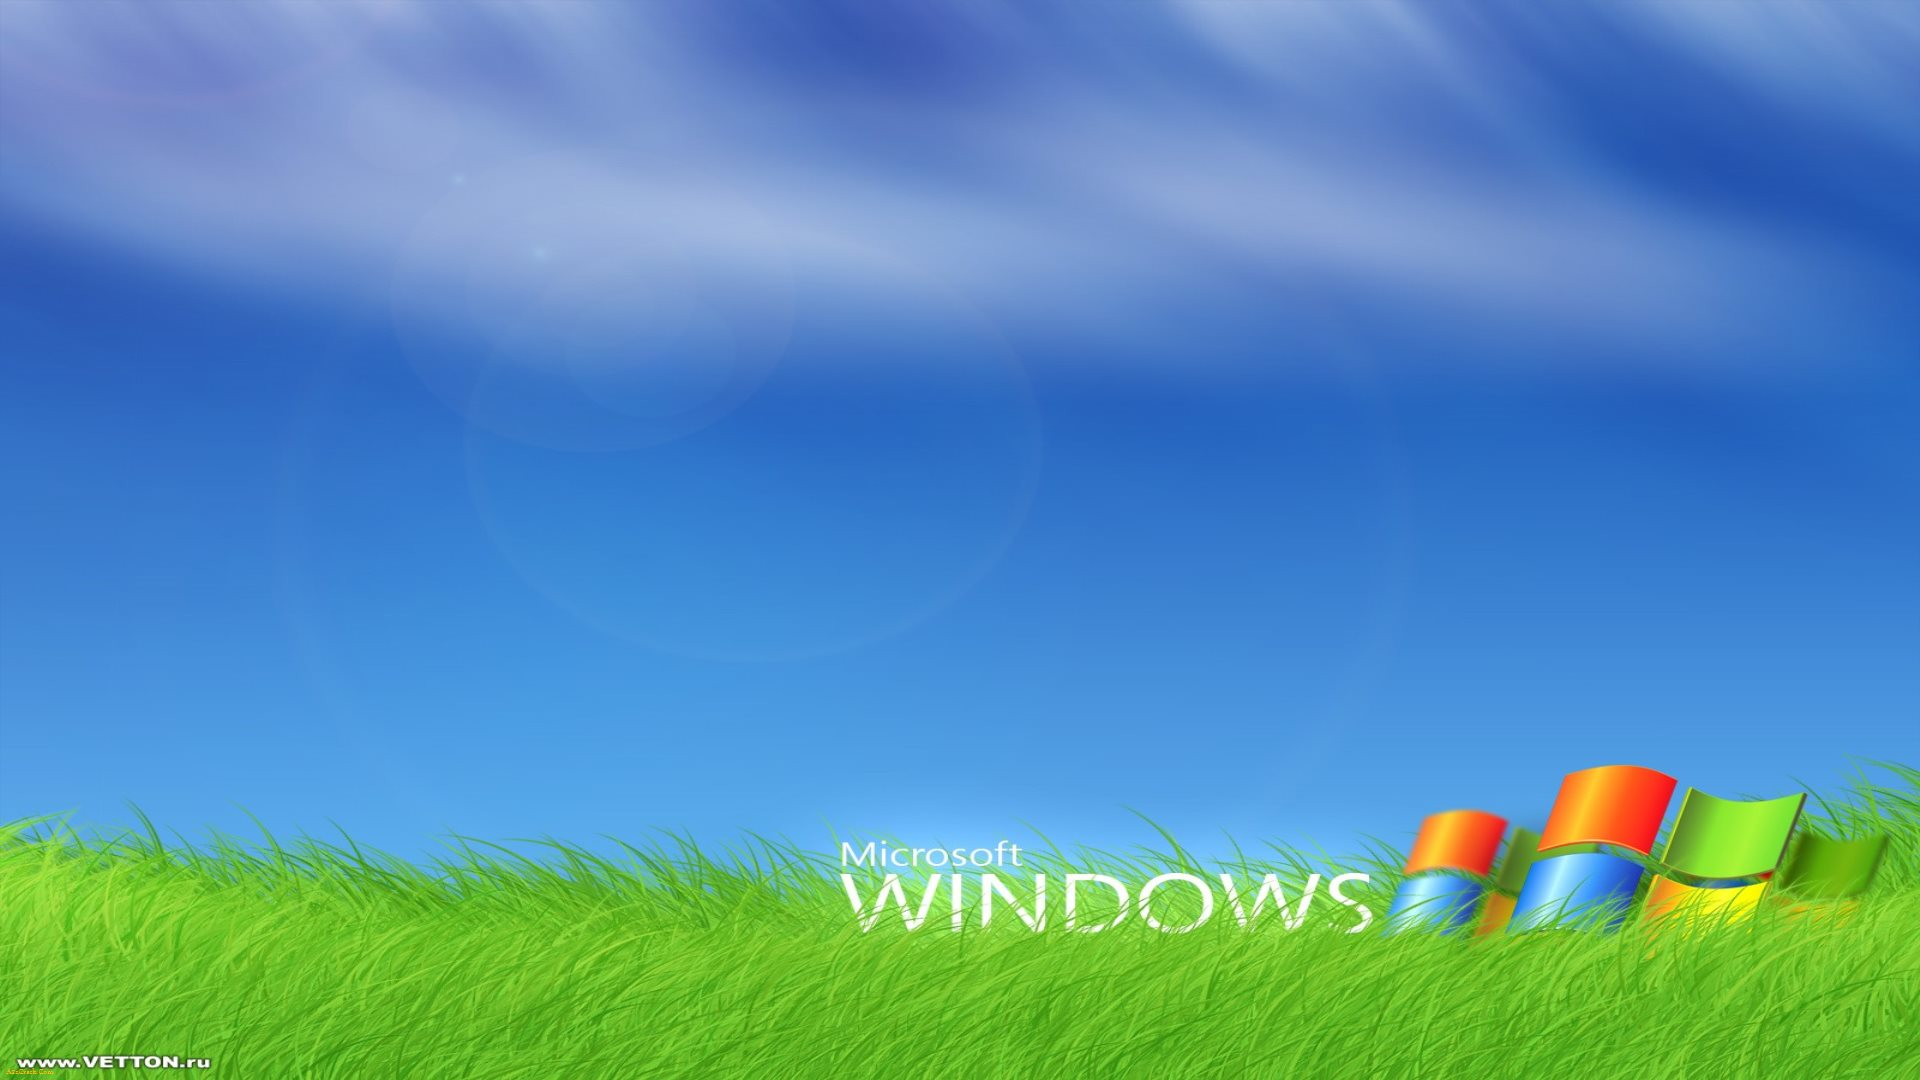 Windows Xp Hd Wallpaper Best Collection 2016 A2zcrack